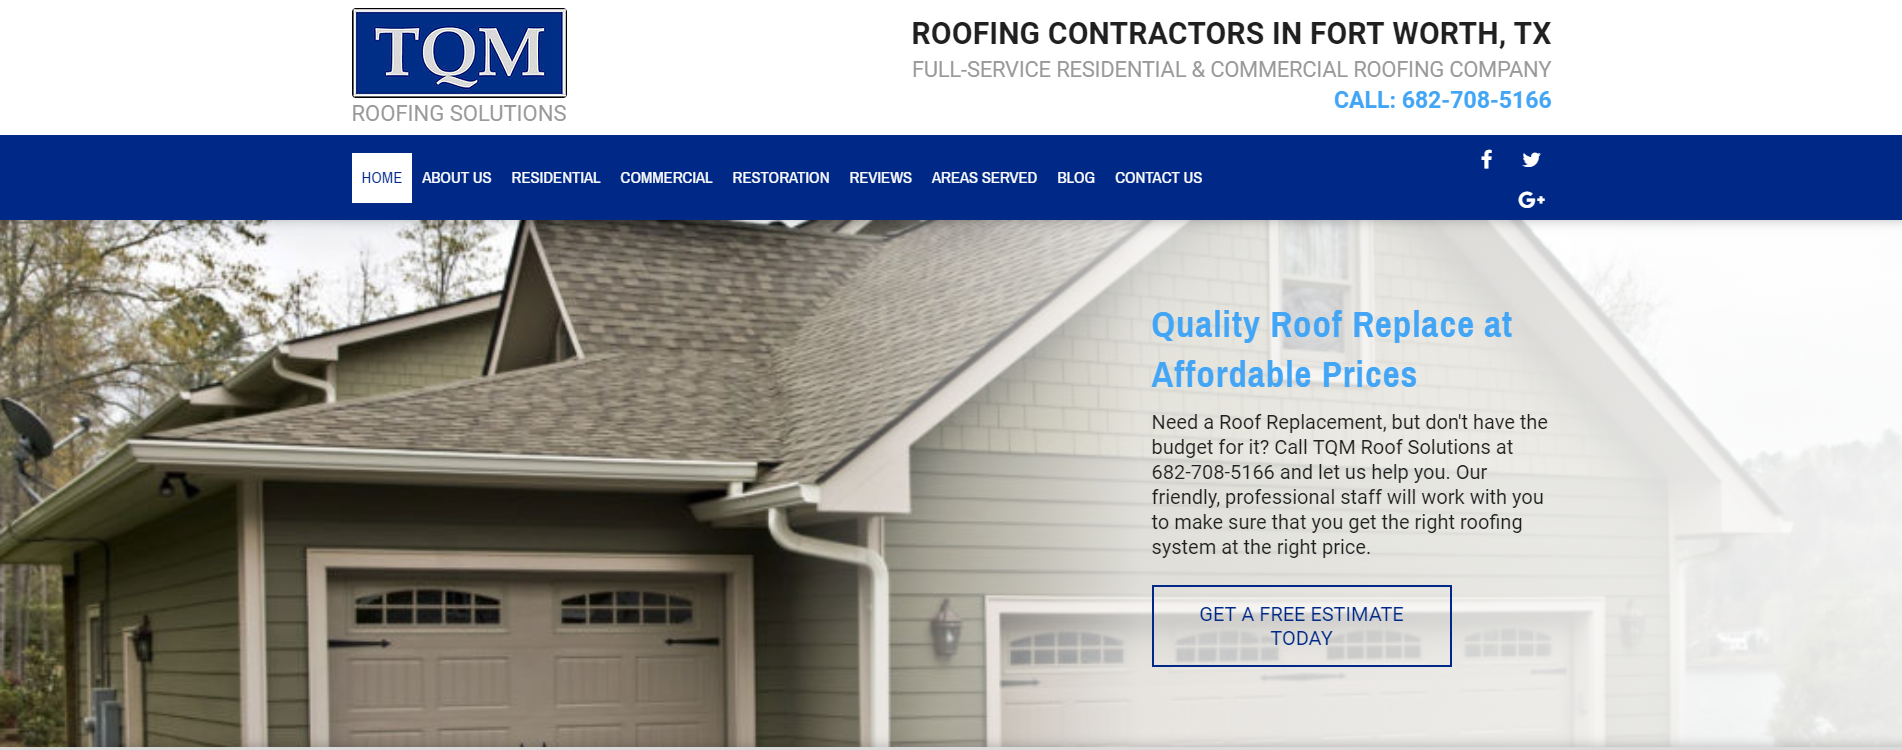 Website Design for Roofing Company